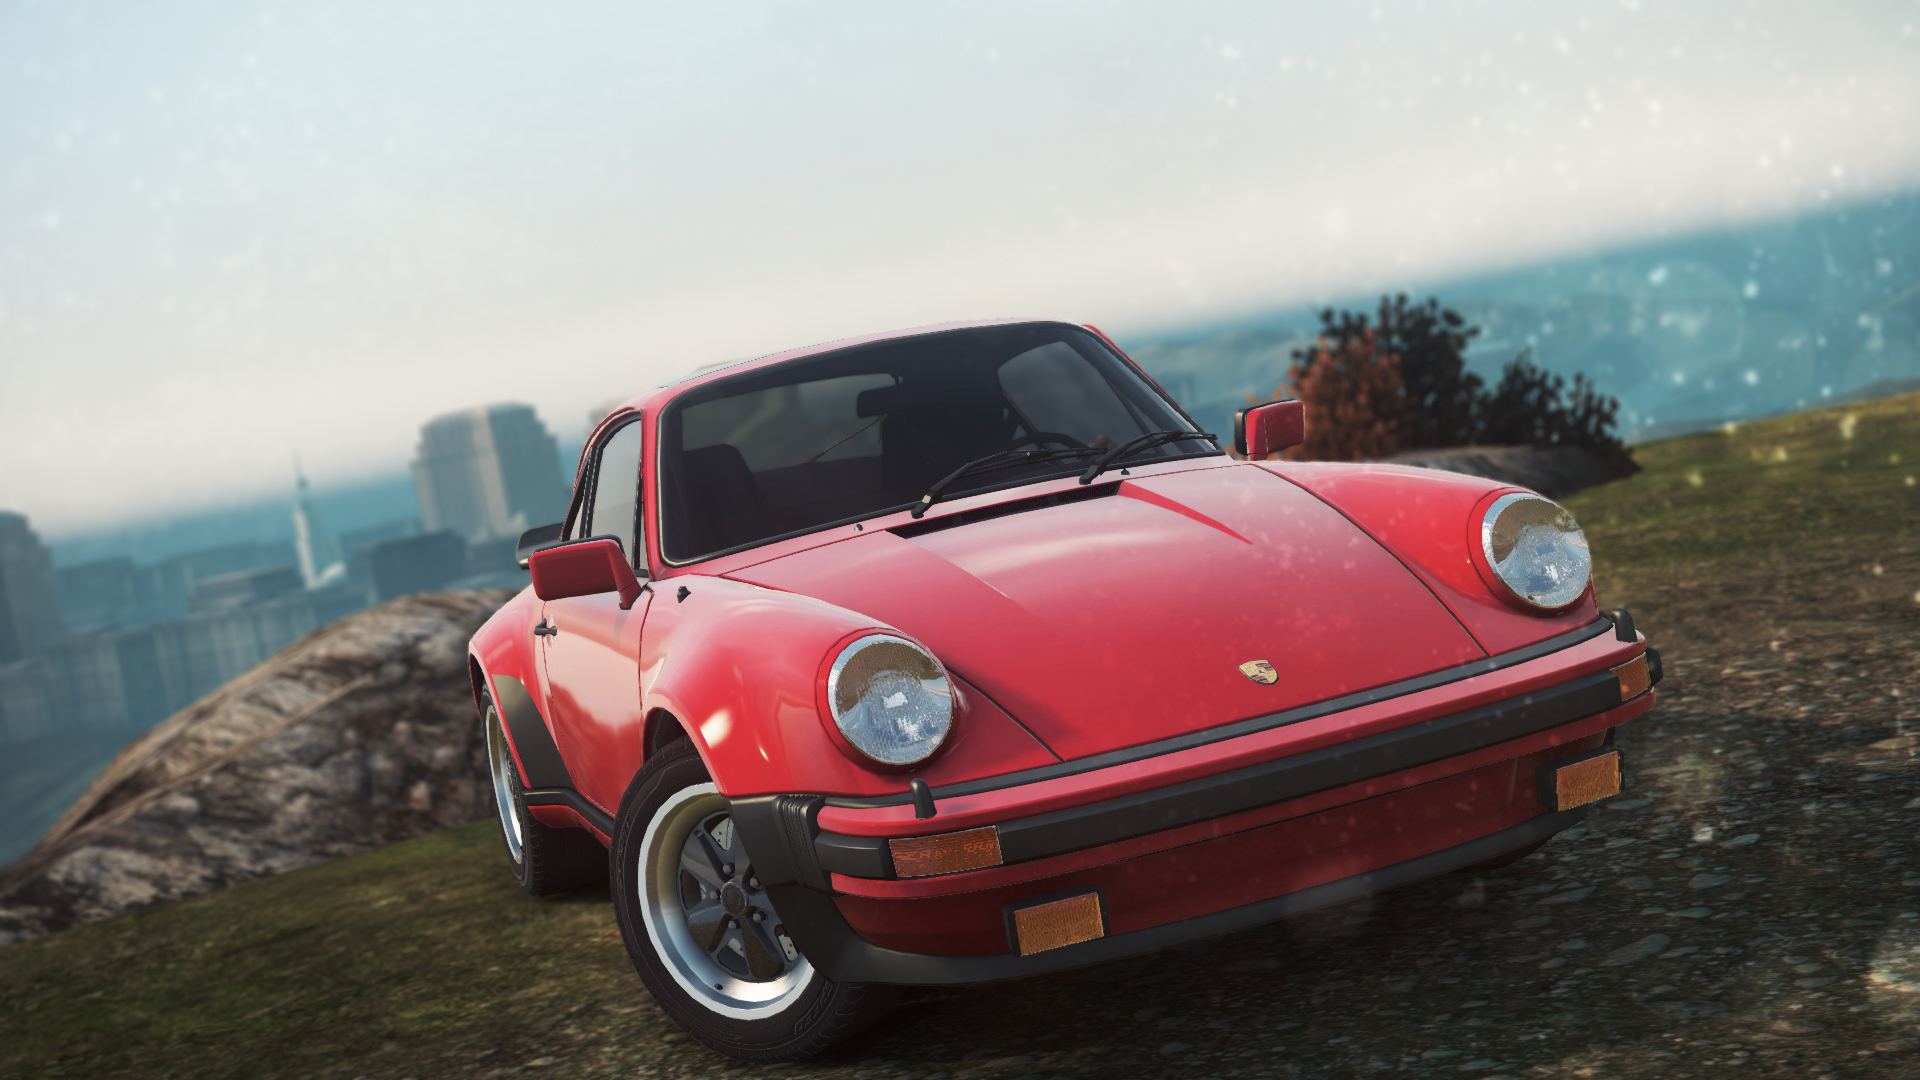 Porsche 911 Turbo 930 3 0 At The Need For Speed Wiki Need For Speed Series Information